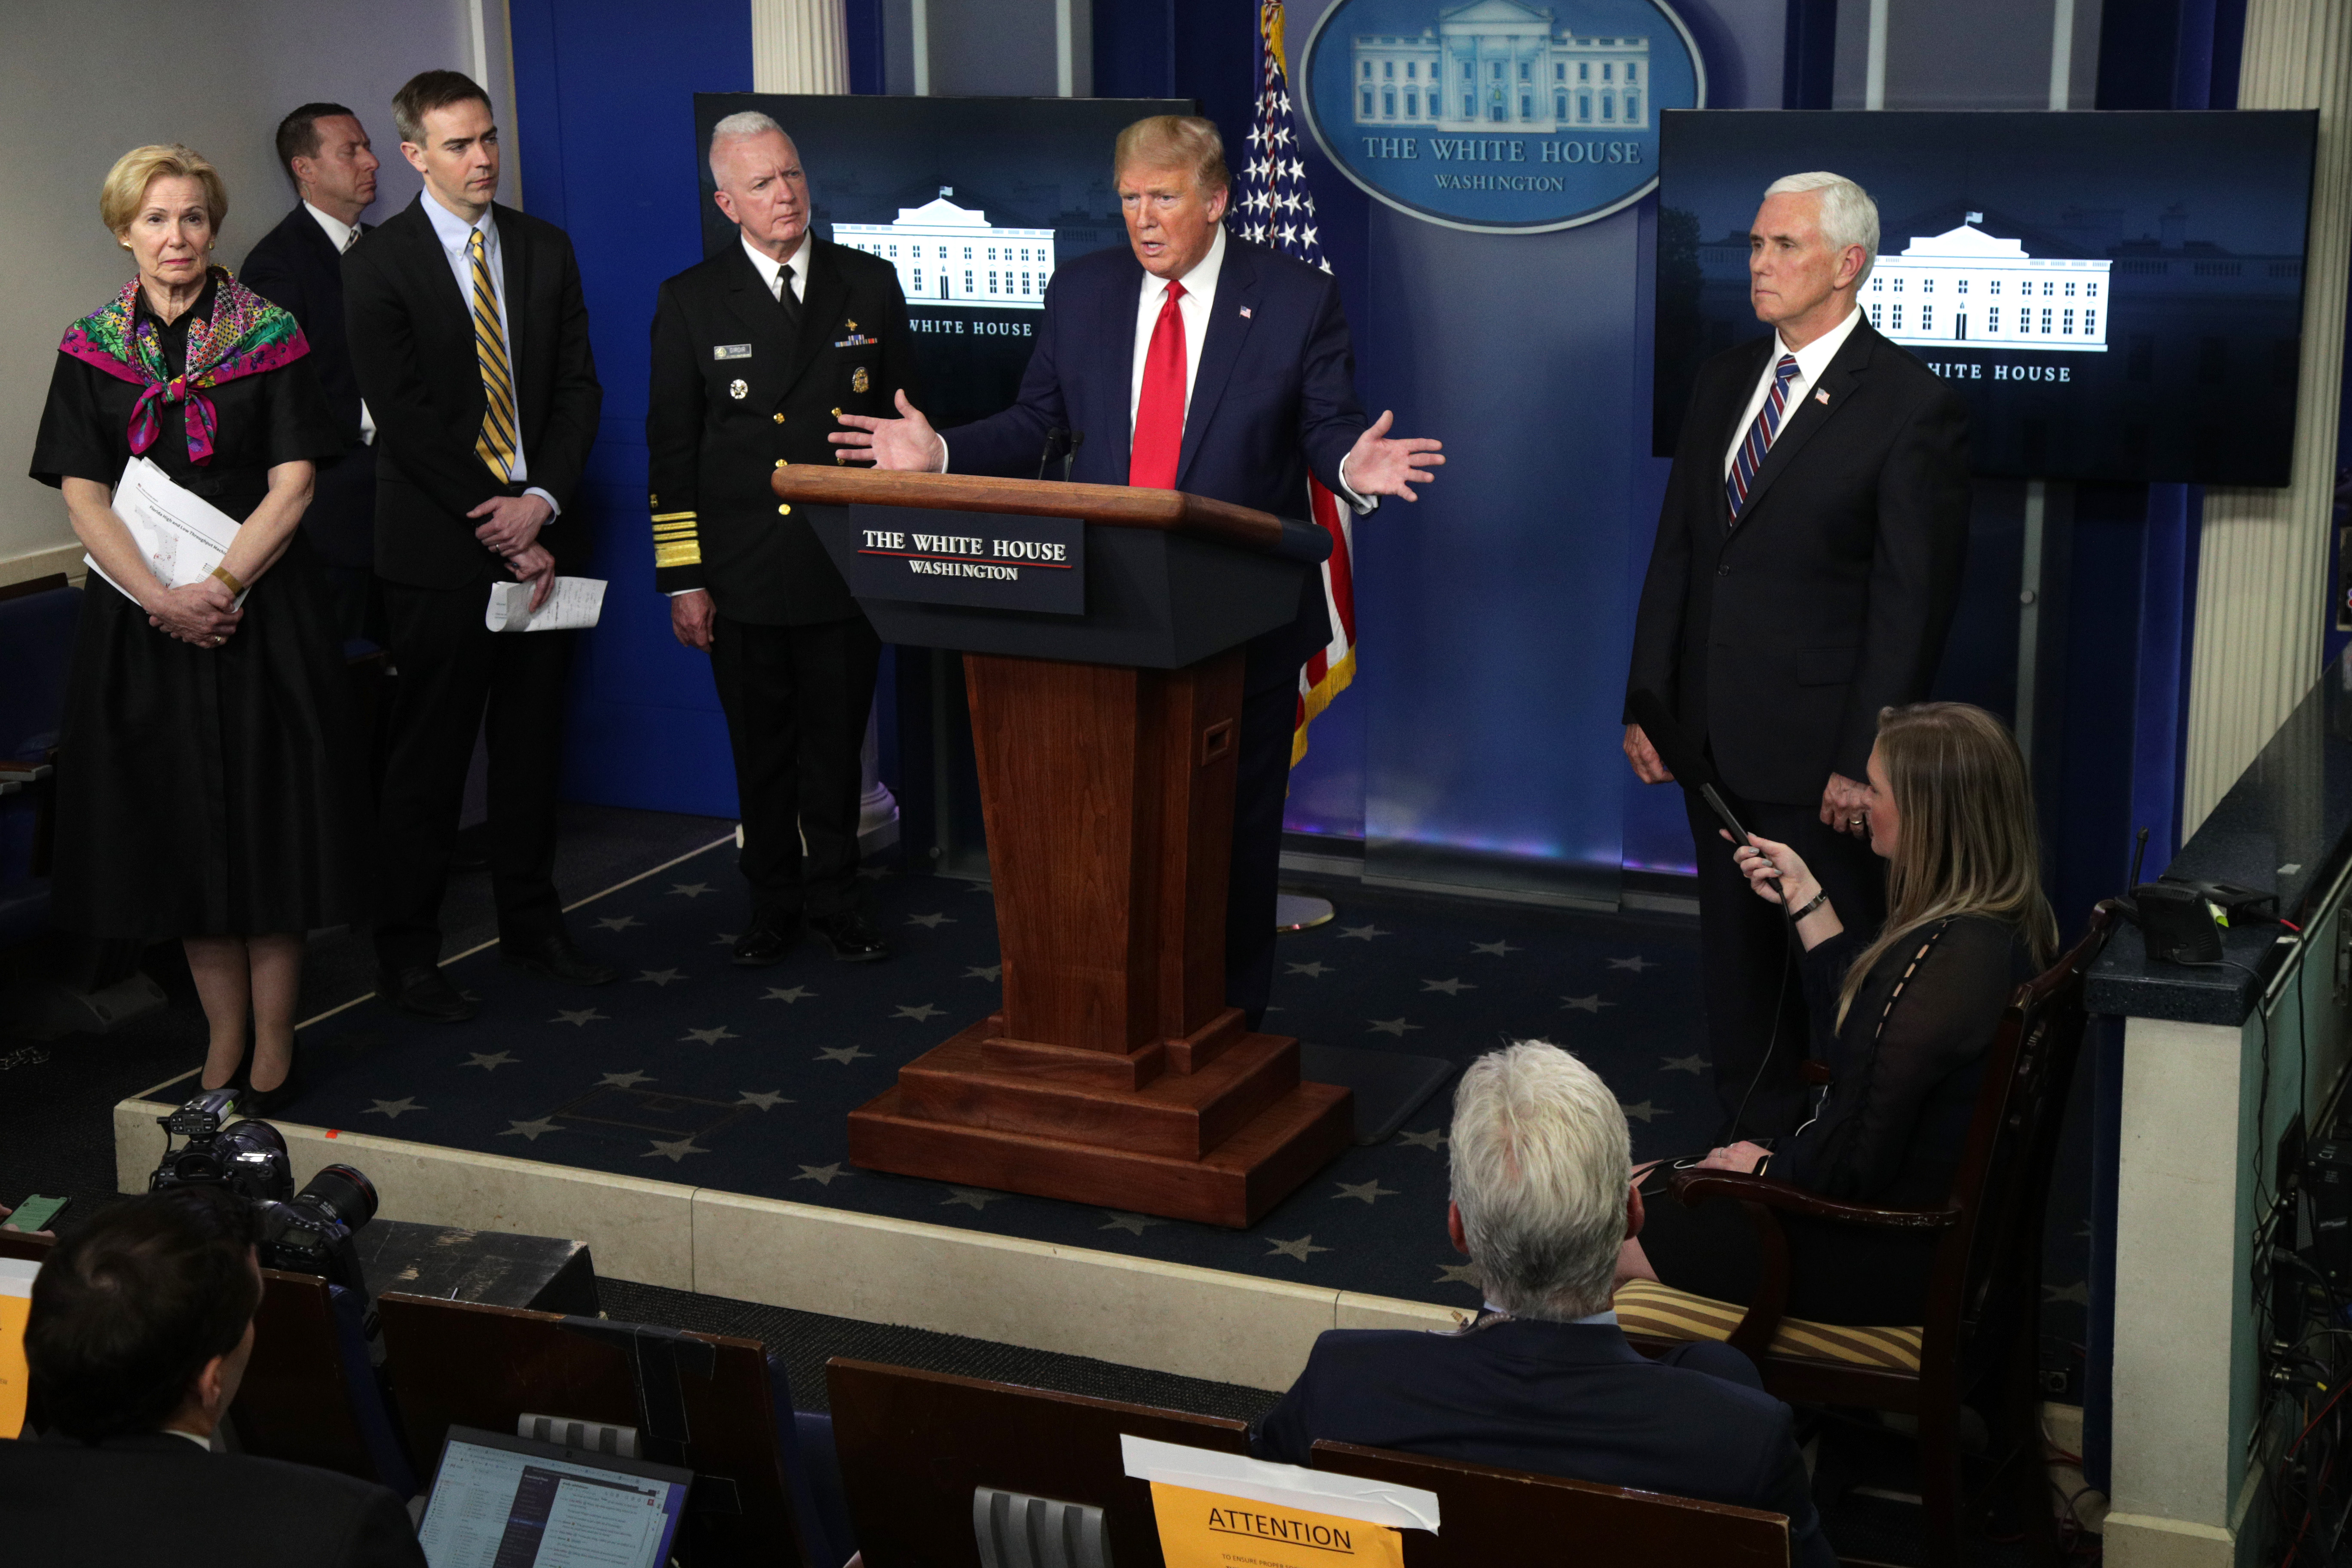 WASHINGTON, DC - APRIL 20: U.S. President Donald Trump speaks as White House coronavirus response coordinator Deborah Birx, Director of the Center for Medicare and Medicaid Innovation at CMS Brad Smith, Assistant Secretary of Health Adm. Brett Giroir and Vice President Mike Pence look on during the daily coronavirus briefing at the White House April 20, 2020 in Washington, DC. Oil prices fell below zero today due to a collapse in energy demand and near full capacity of storage tanks in the U.S., brought on by the COVID-19 pandemic lockdown. (Photo by Alex Wong/Getty Images)